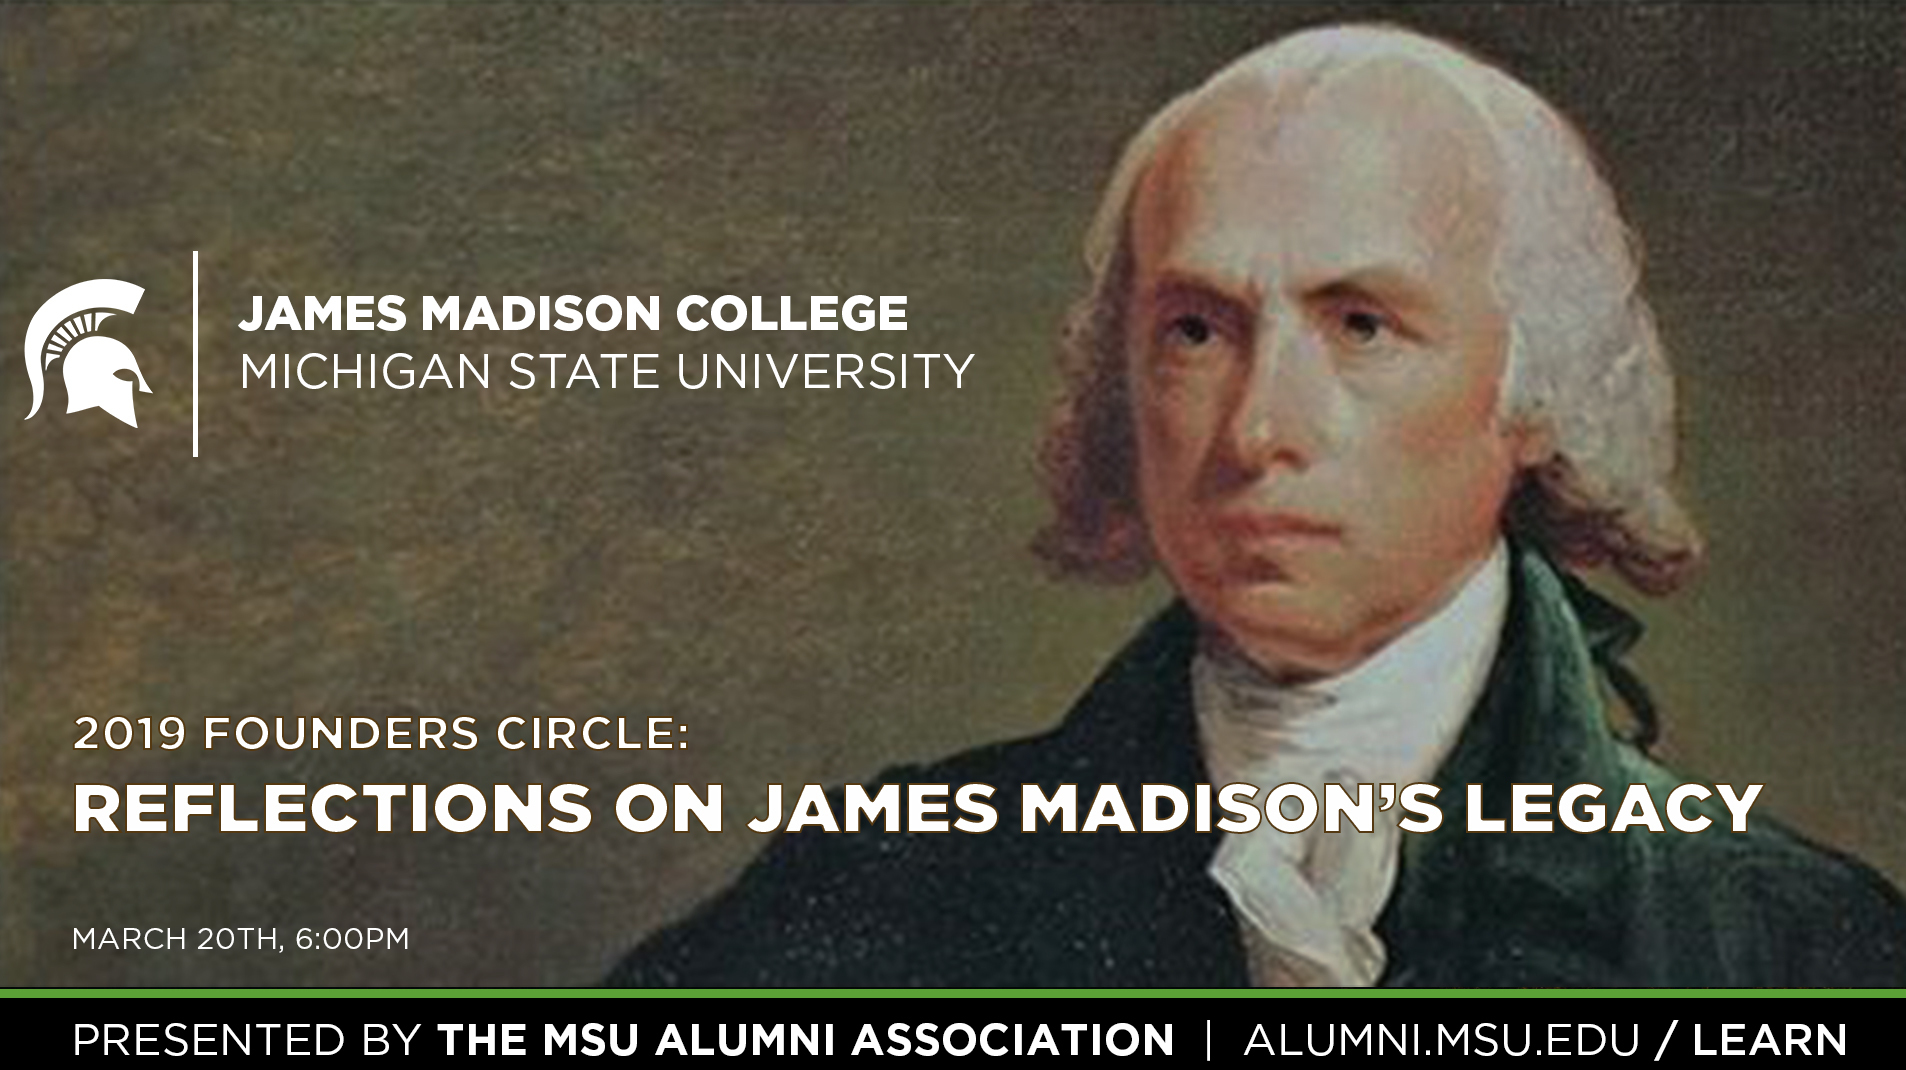 livestream cover image for 2019 Founders Circle | Reflections on James Madison's Legacy